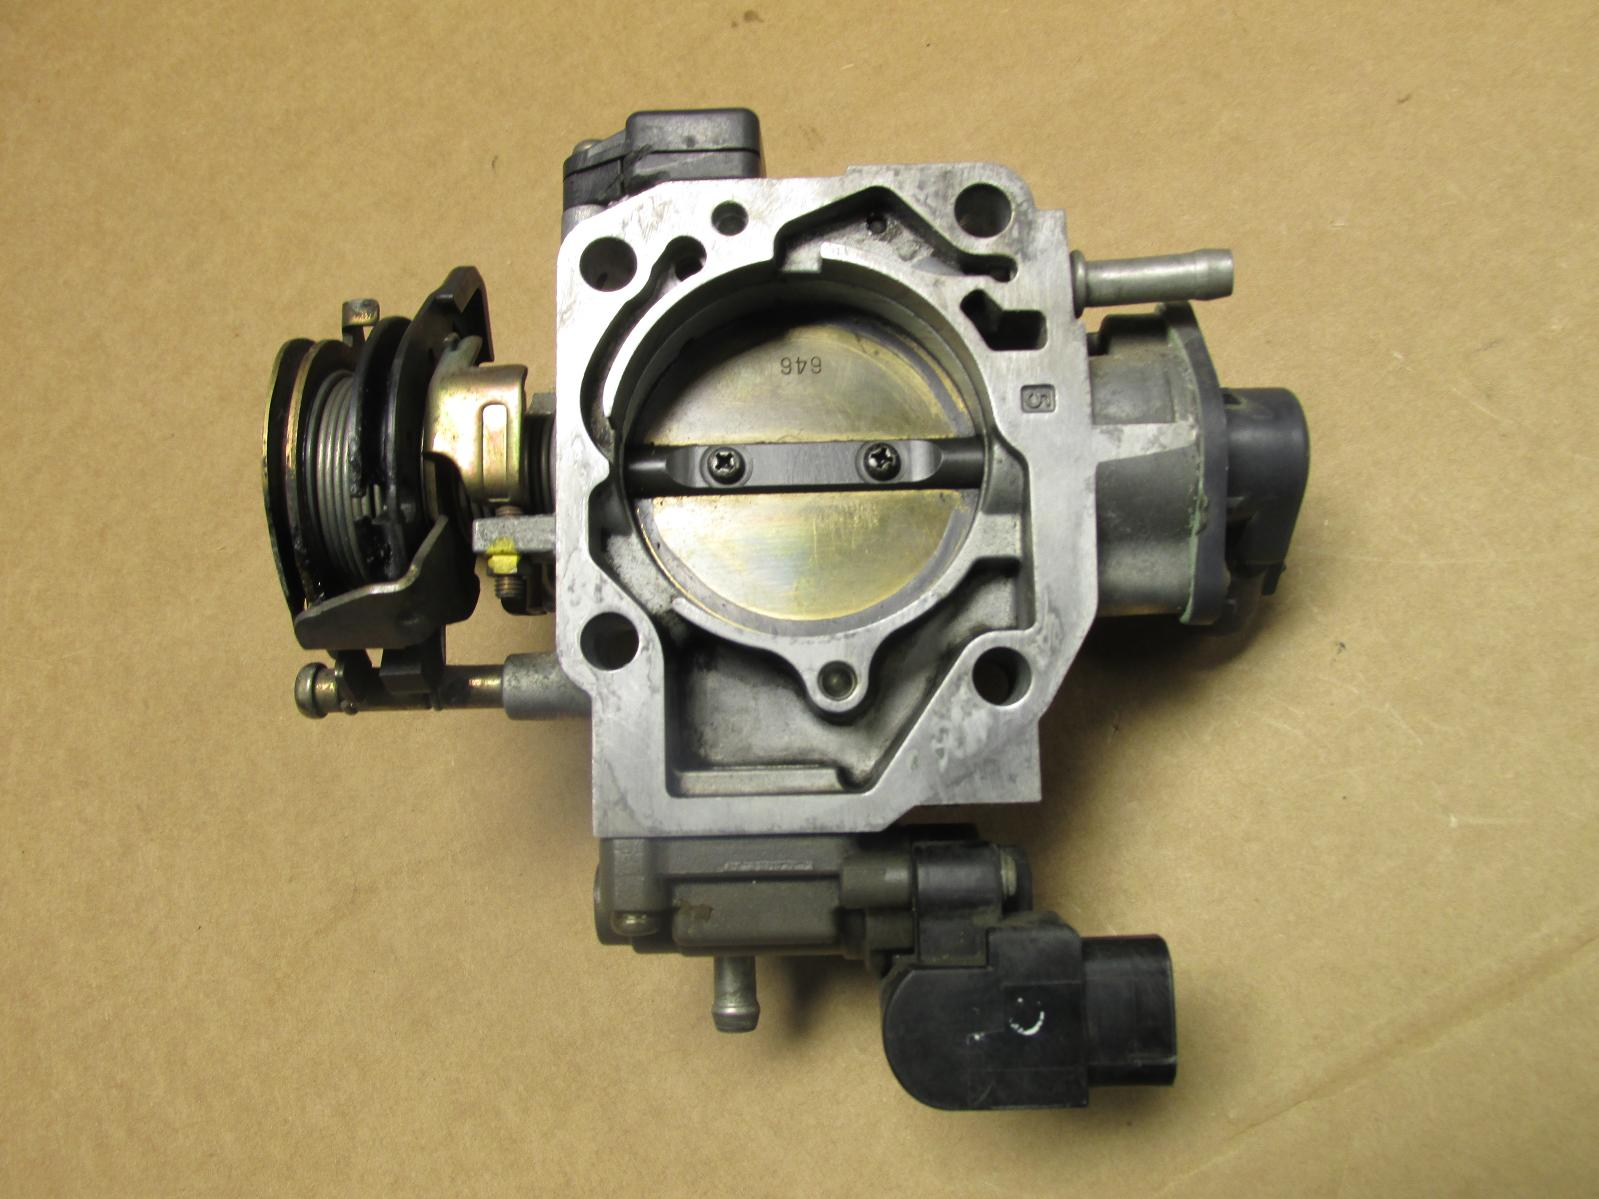 [2003 Honda Pilot Throttle Body Repair] - 2014 Honda Pilot ...